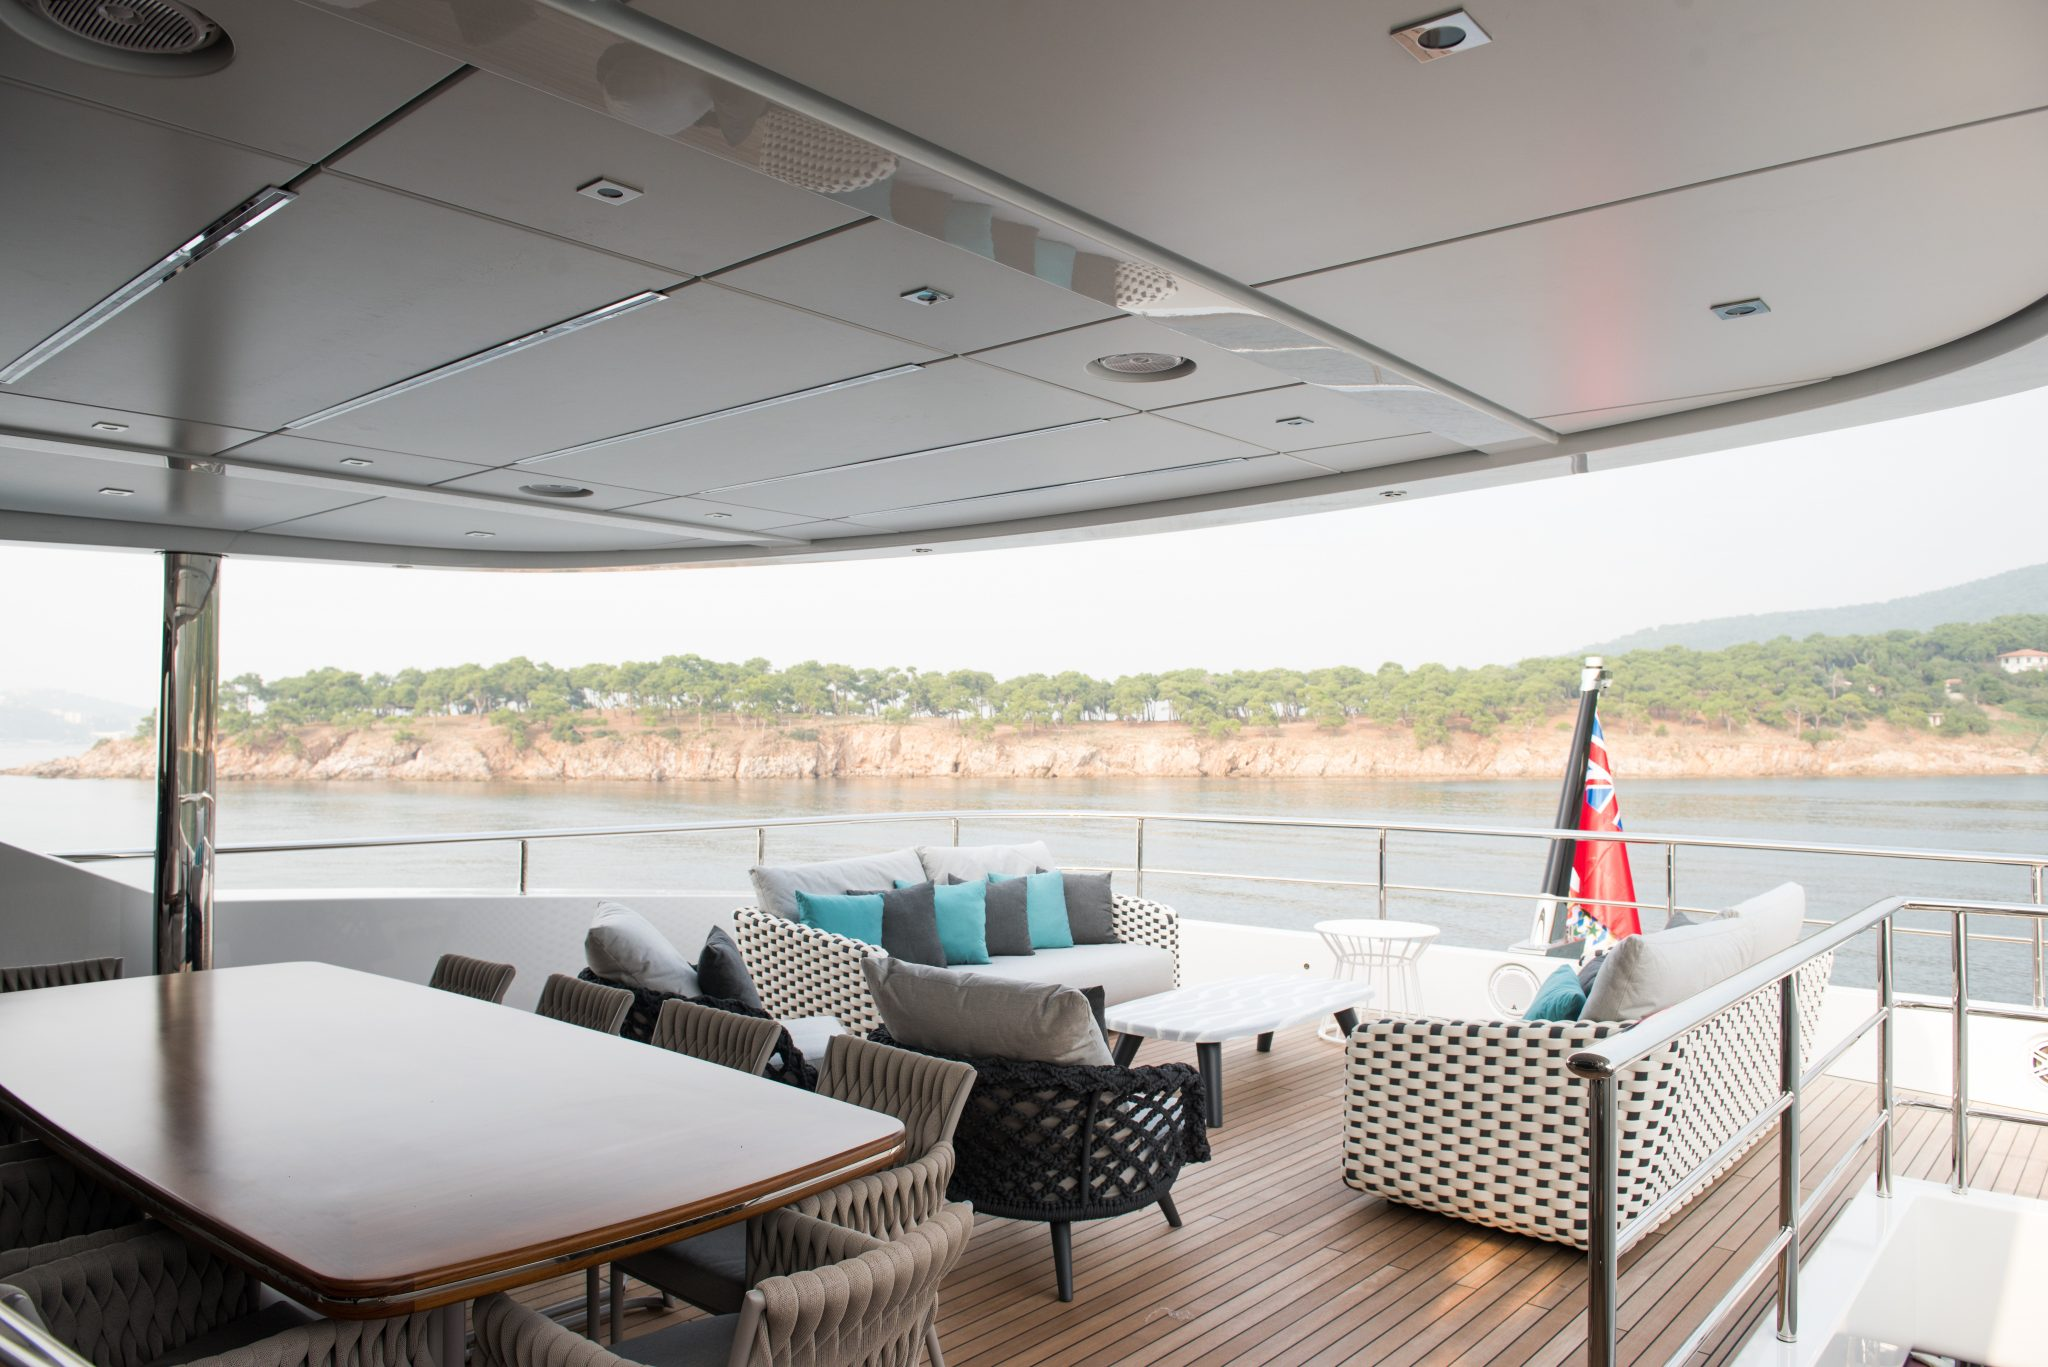 44m Virtus Yacht Aft Luxury Seating Area